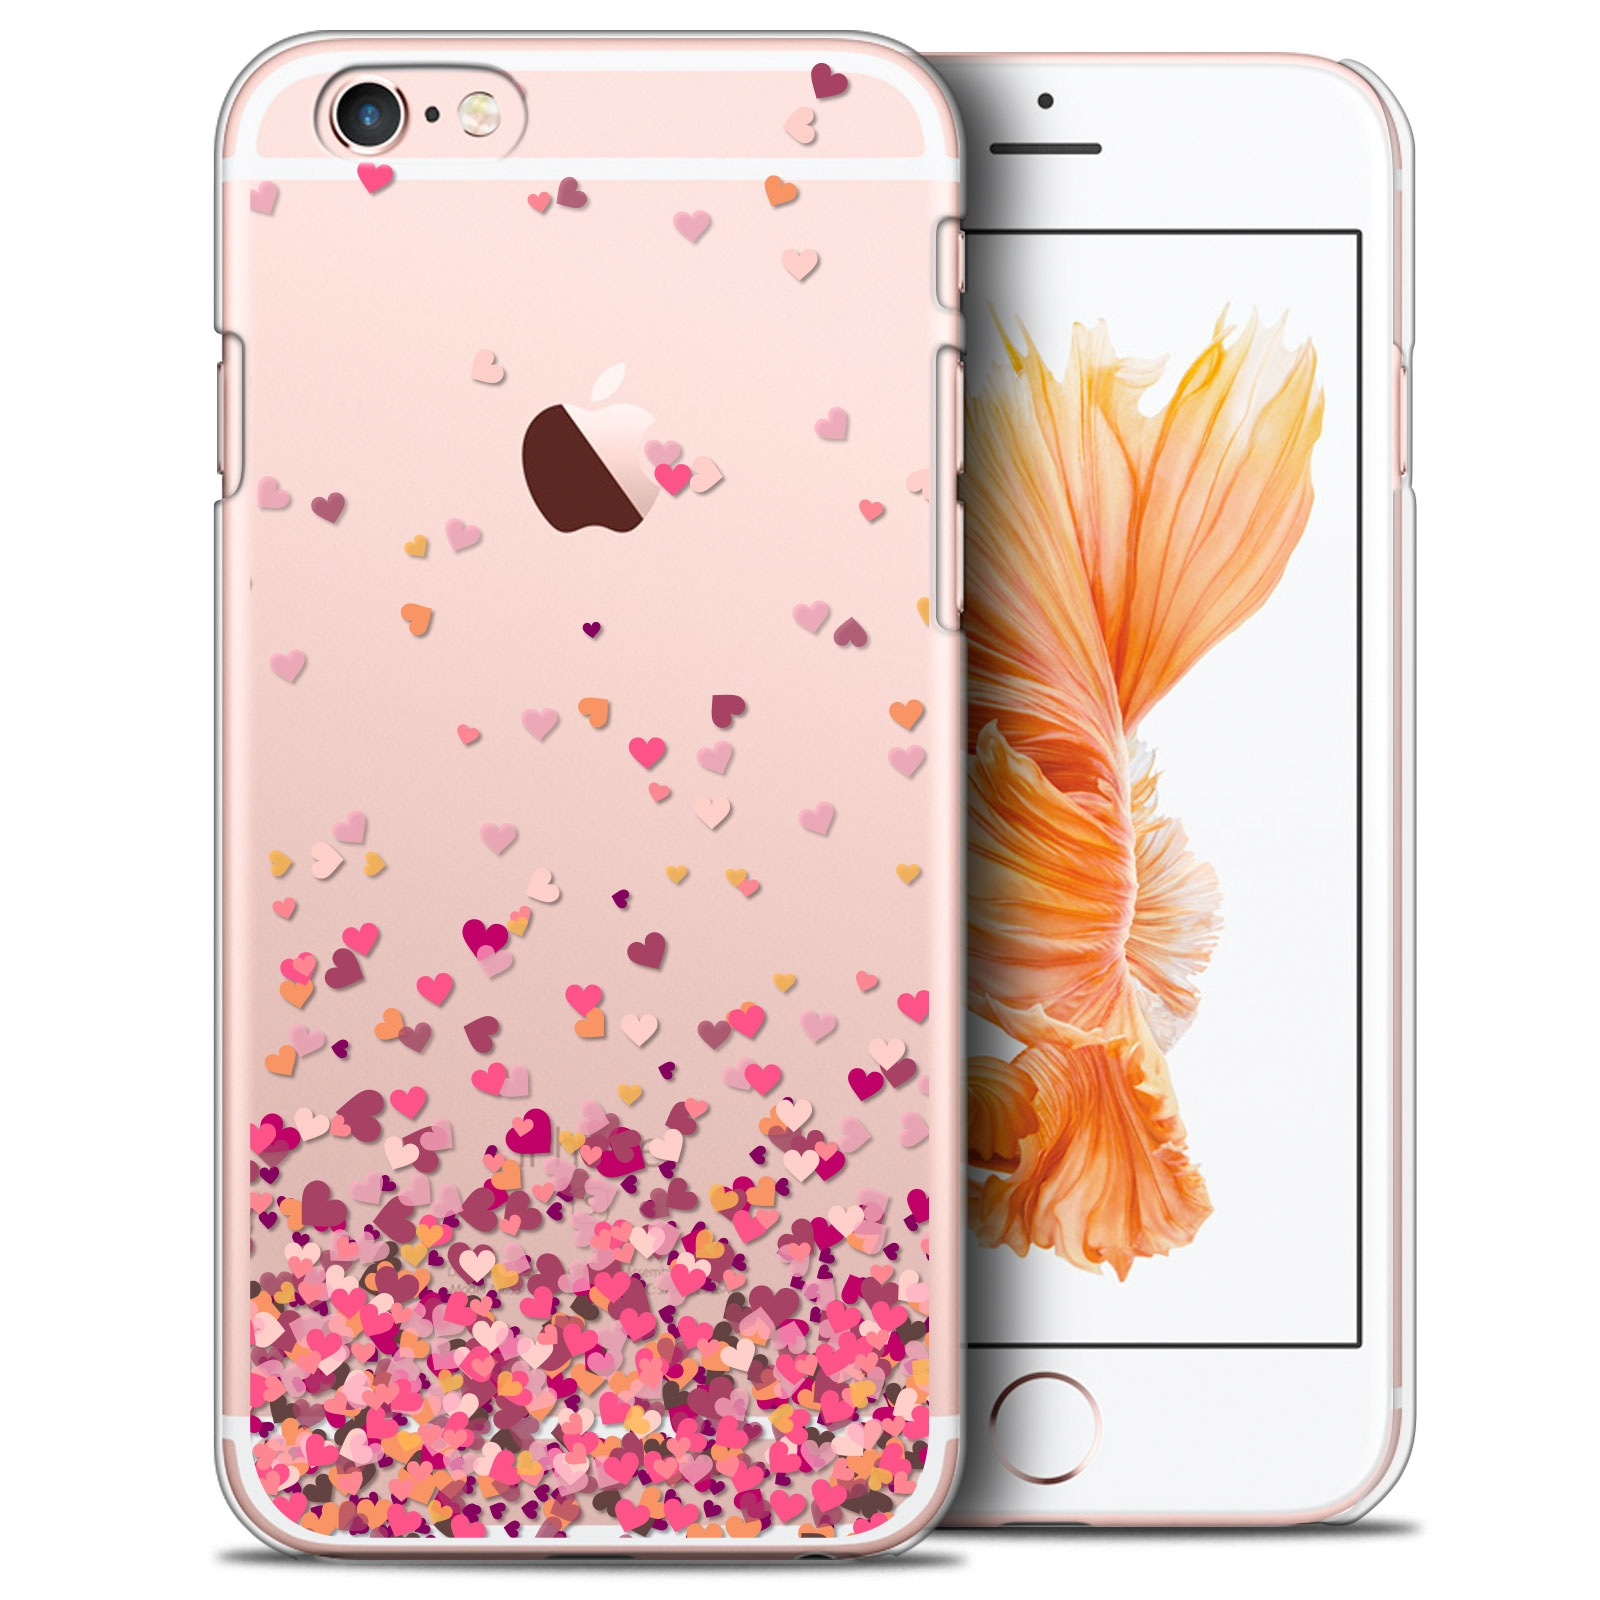 coque crystal iphone 6 6s plus 5 5 extra fine design made in france heart flakes. Black Bedroom Furniture Sets. Home Design Ideas